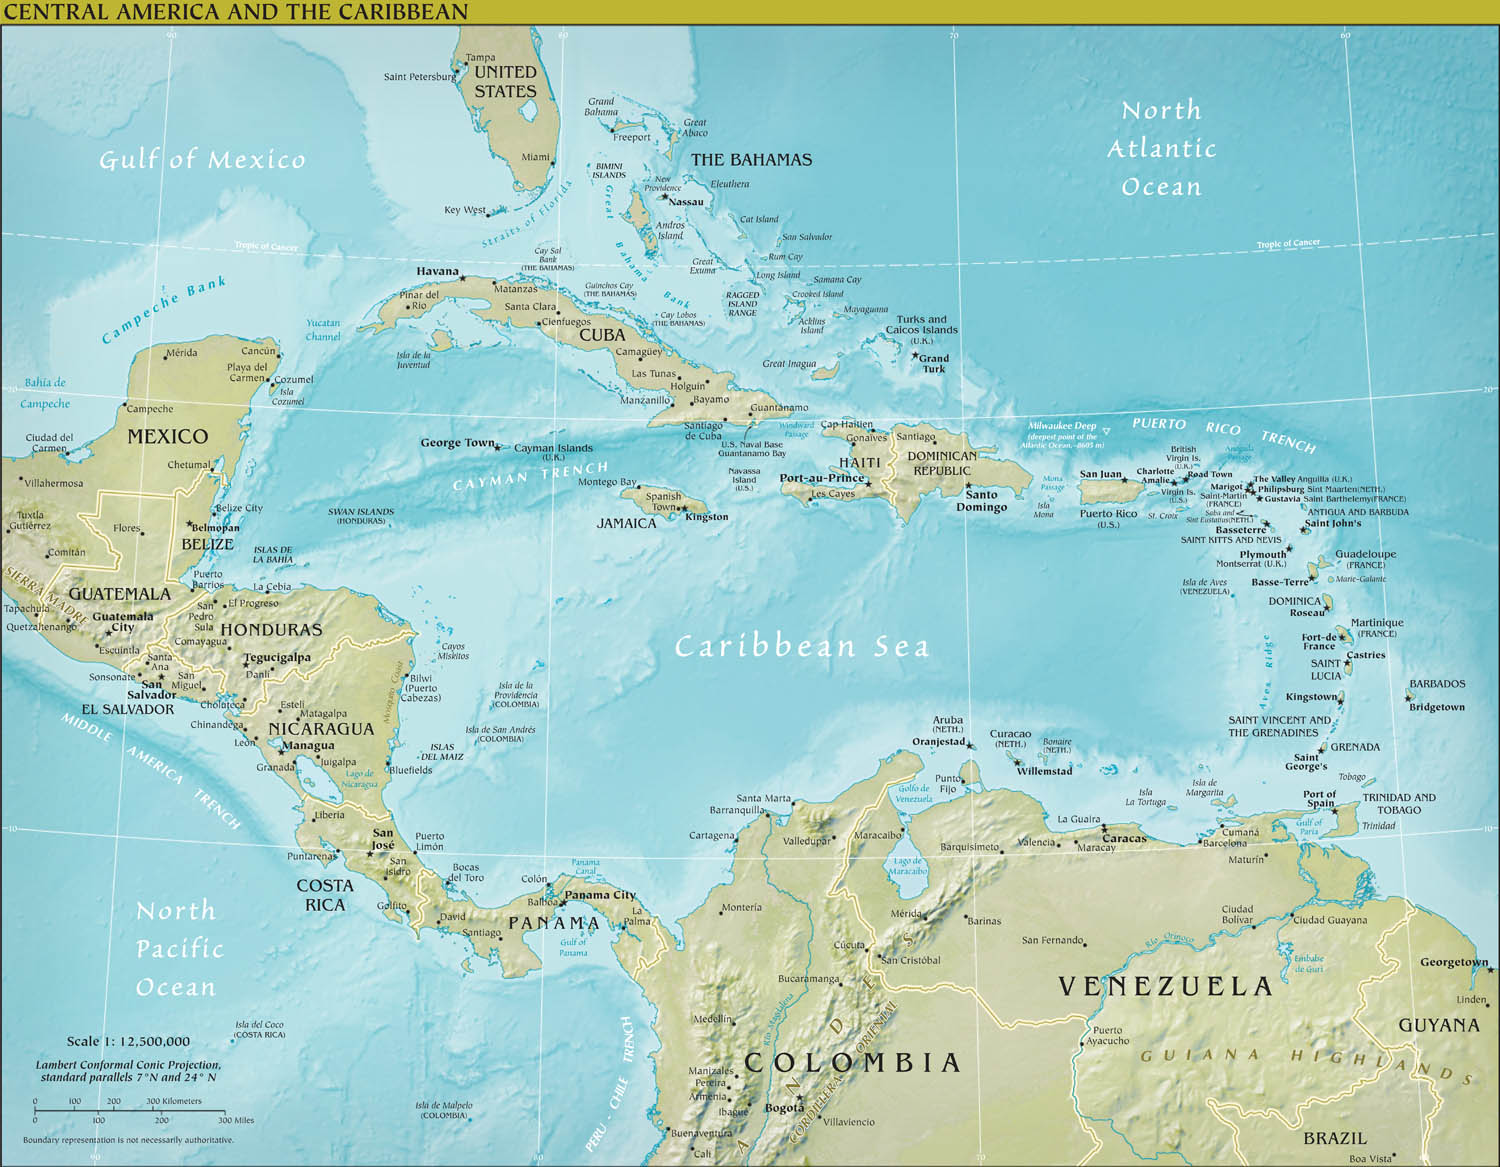 Poster of central america physical map vintprint posters central america physical map sciox Images